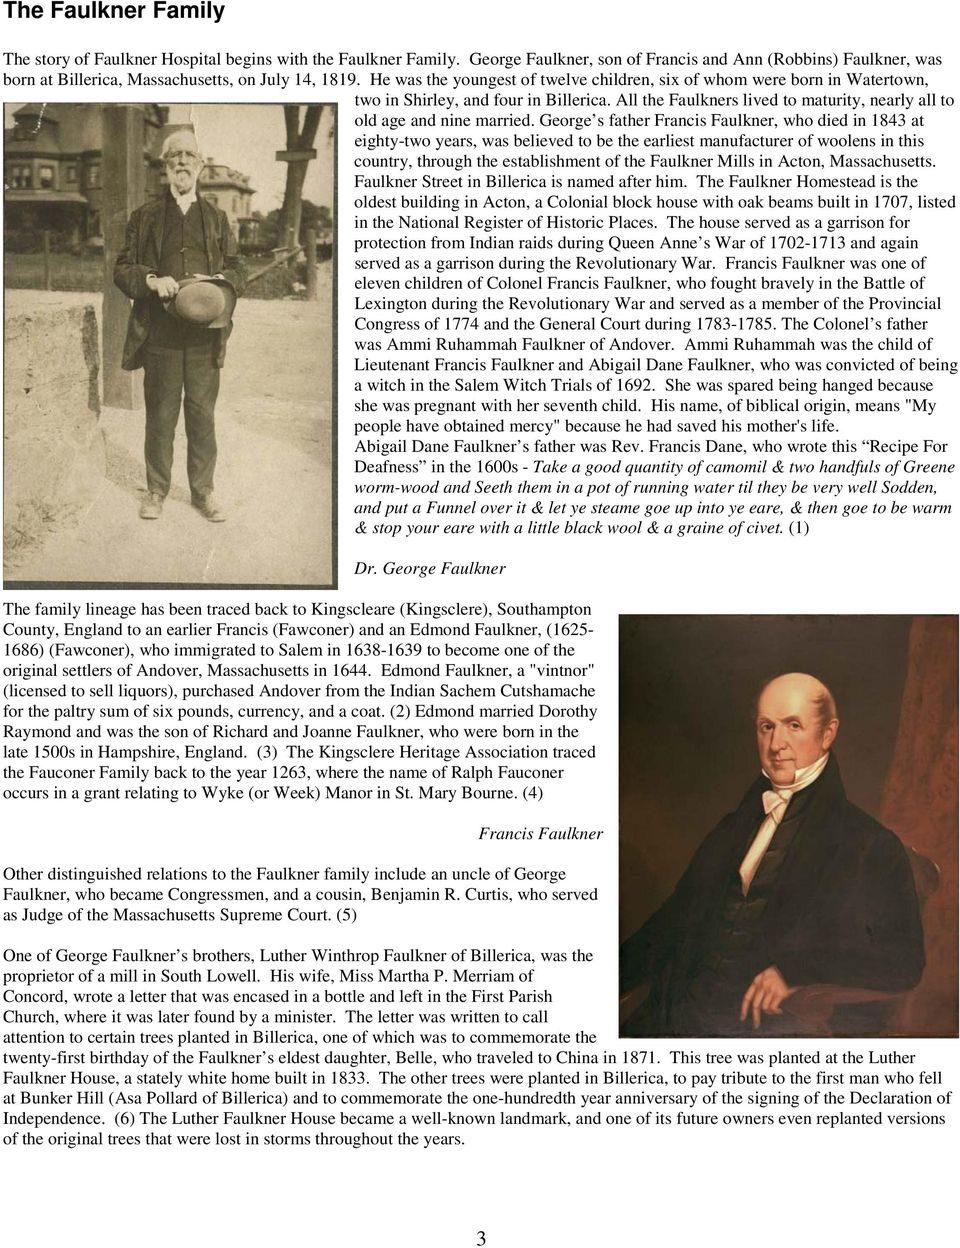 George s father Francis Faulkner, who died in 1843 at eighty-two years, was believed to be the earliest manufacturer of woolens in this country, through the establishment of the Faulkner Mills in